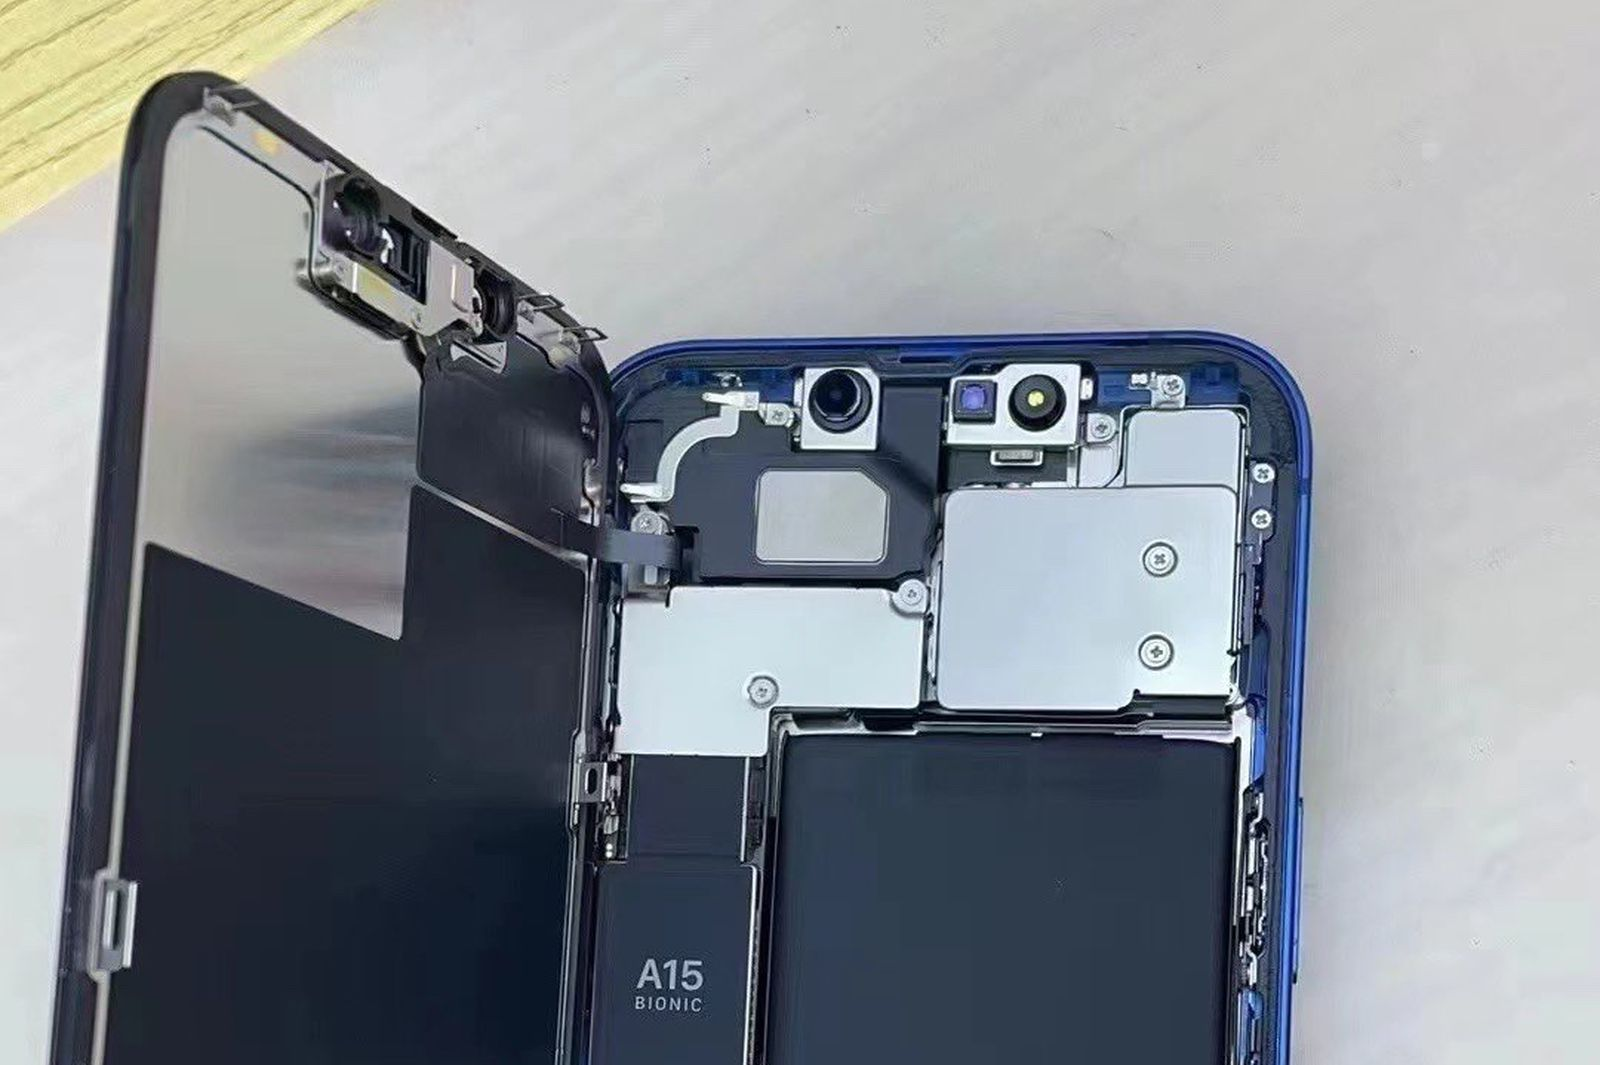 First Look Inside iPhone 13 Reveals Revamped TrueDepth System, Smaller Taptic Engine, and Larger Battery - MacRumors